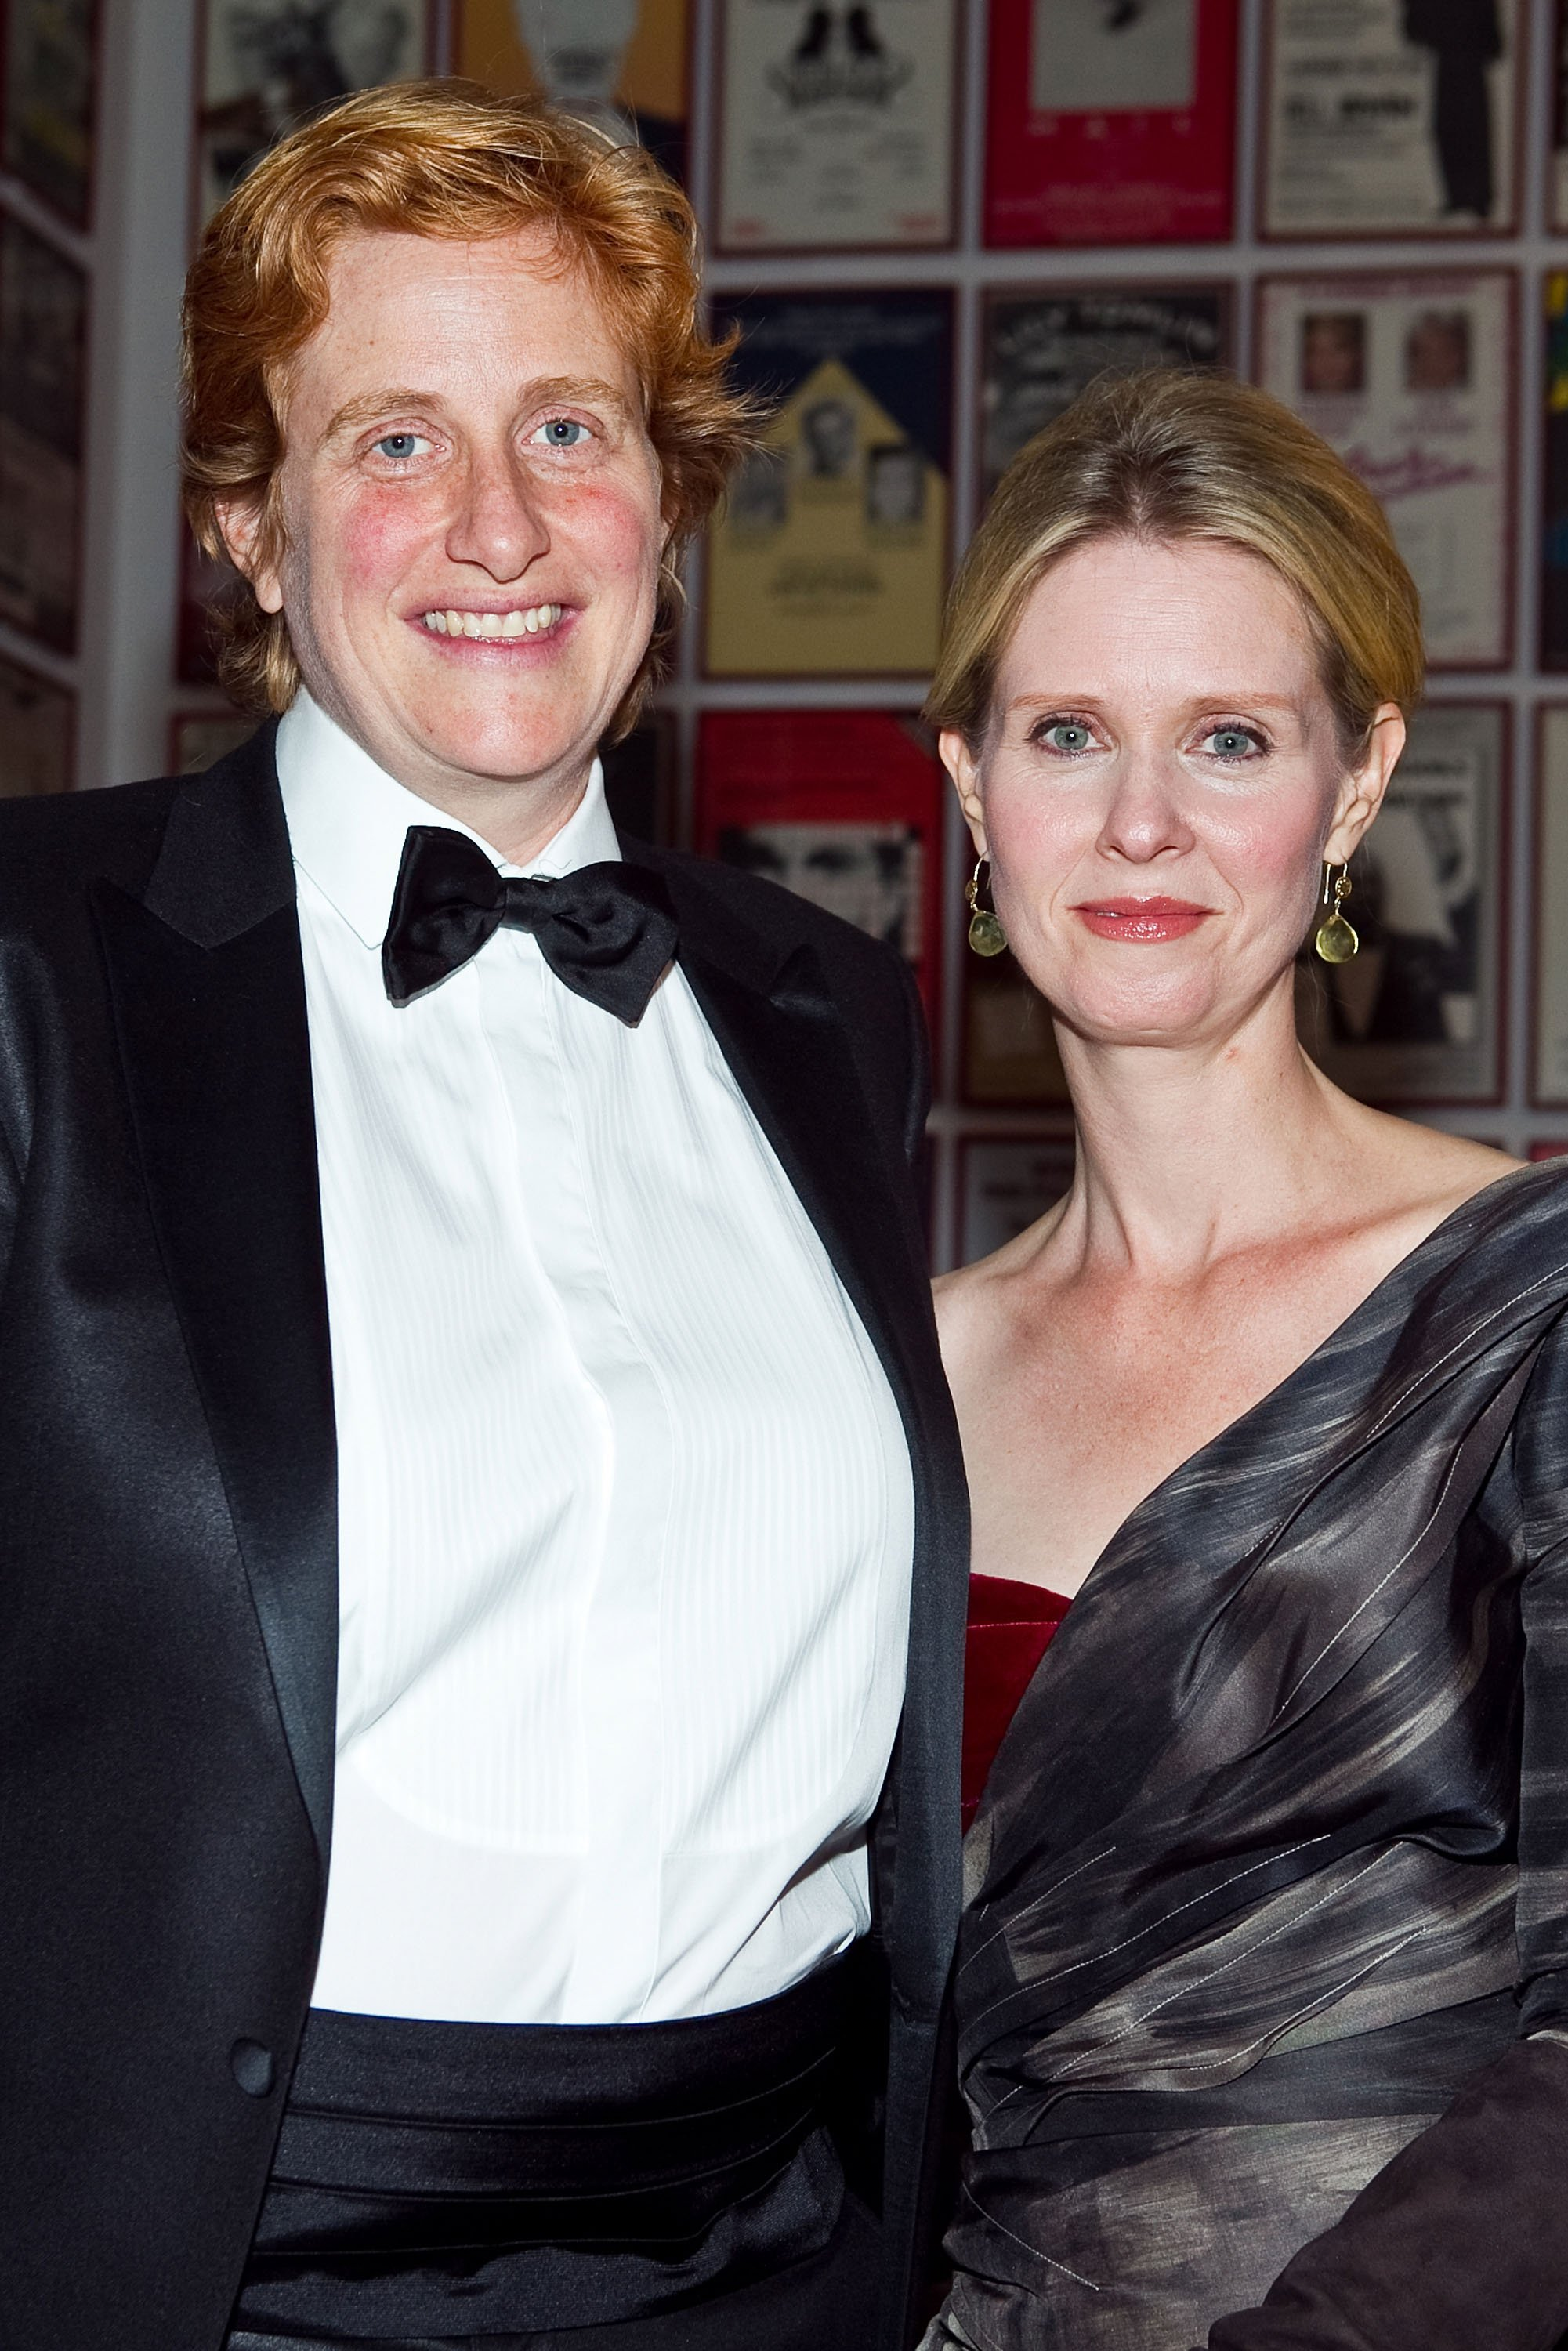 cynthia-nixon-and-christine-marinoni-lgbt